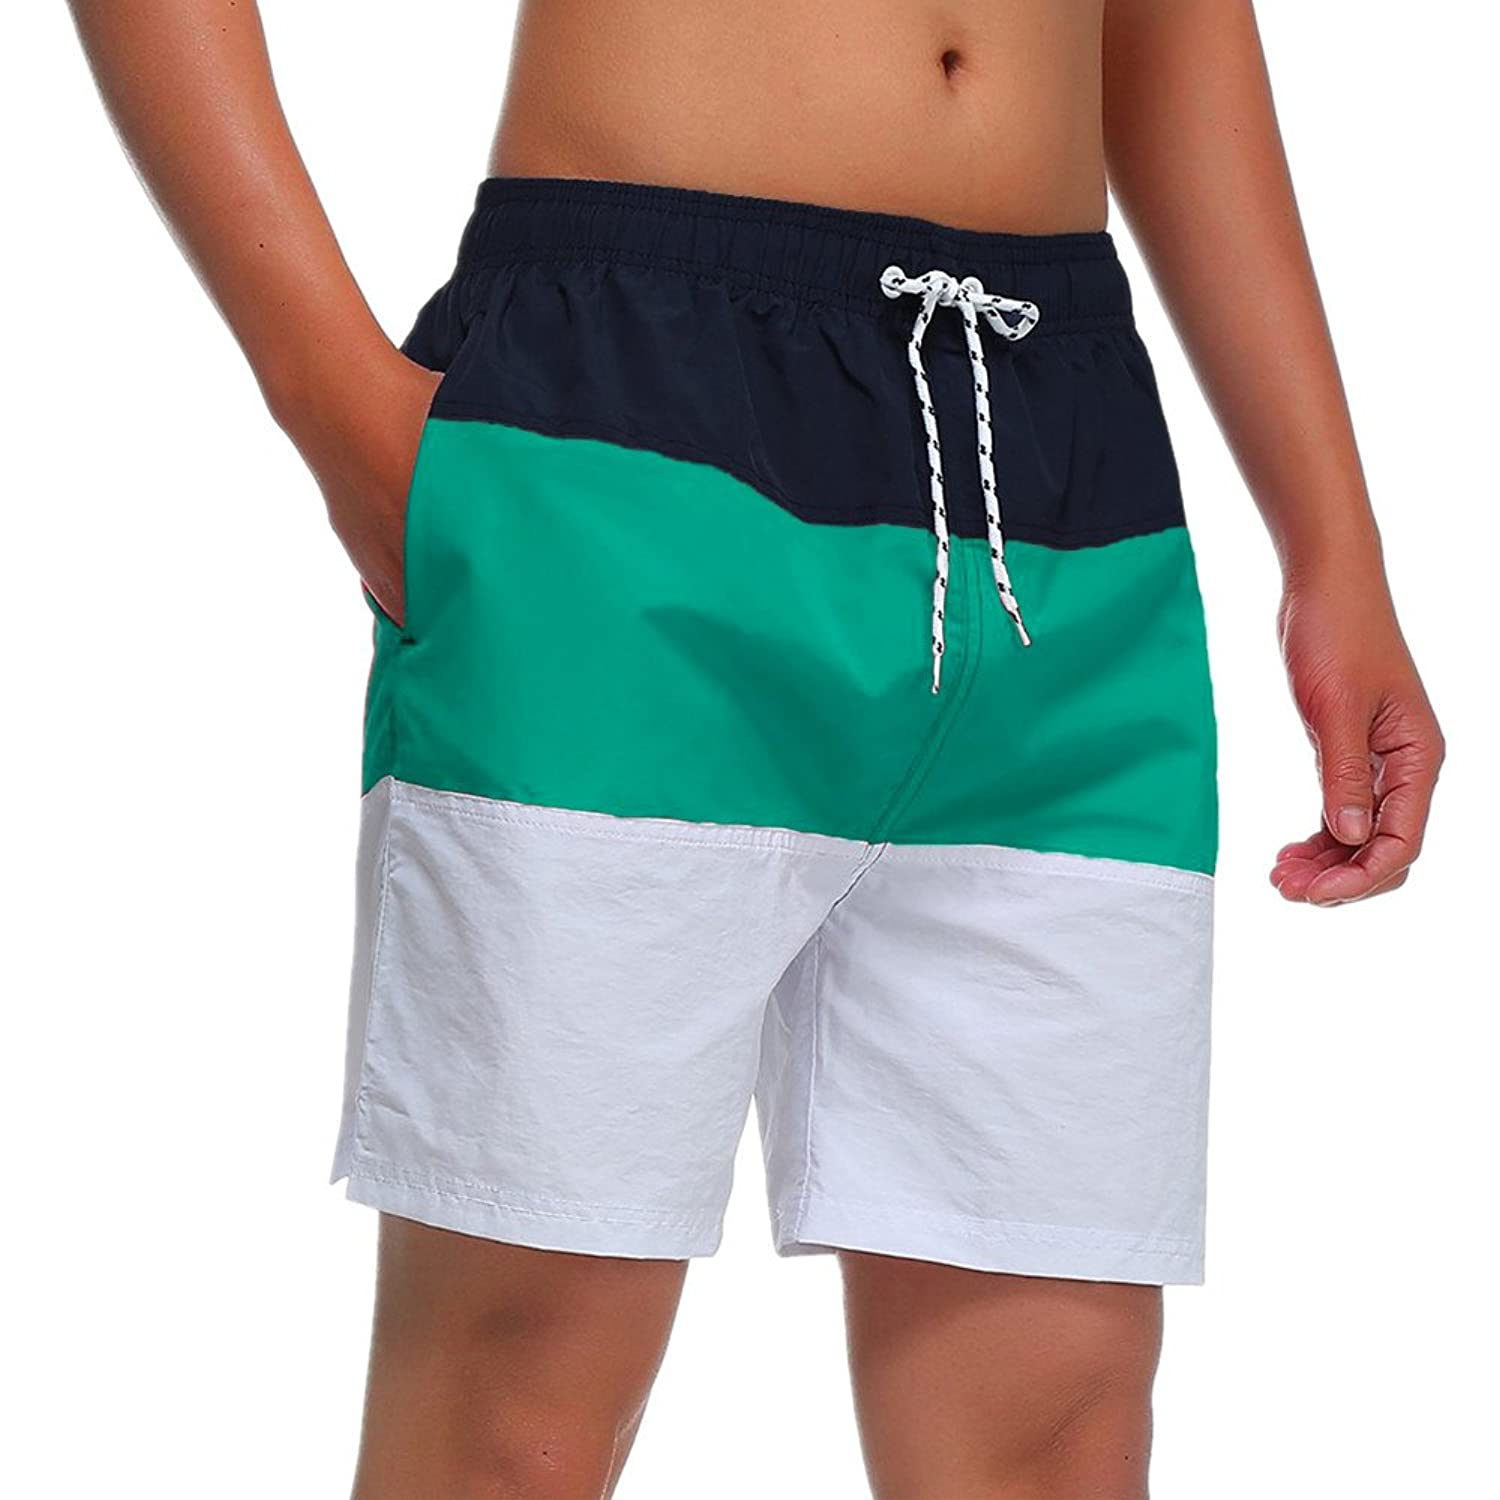 Men's Swim Trunks | Amazon.com